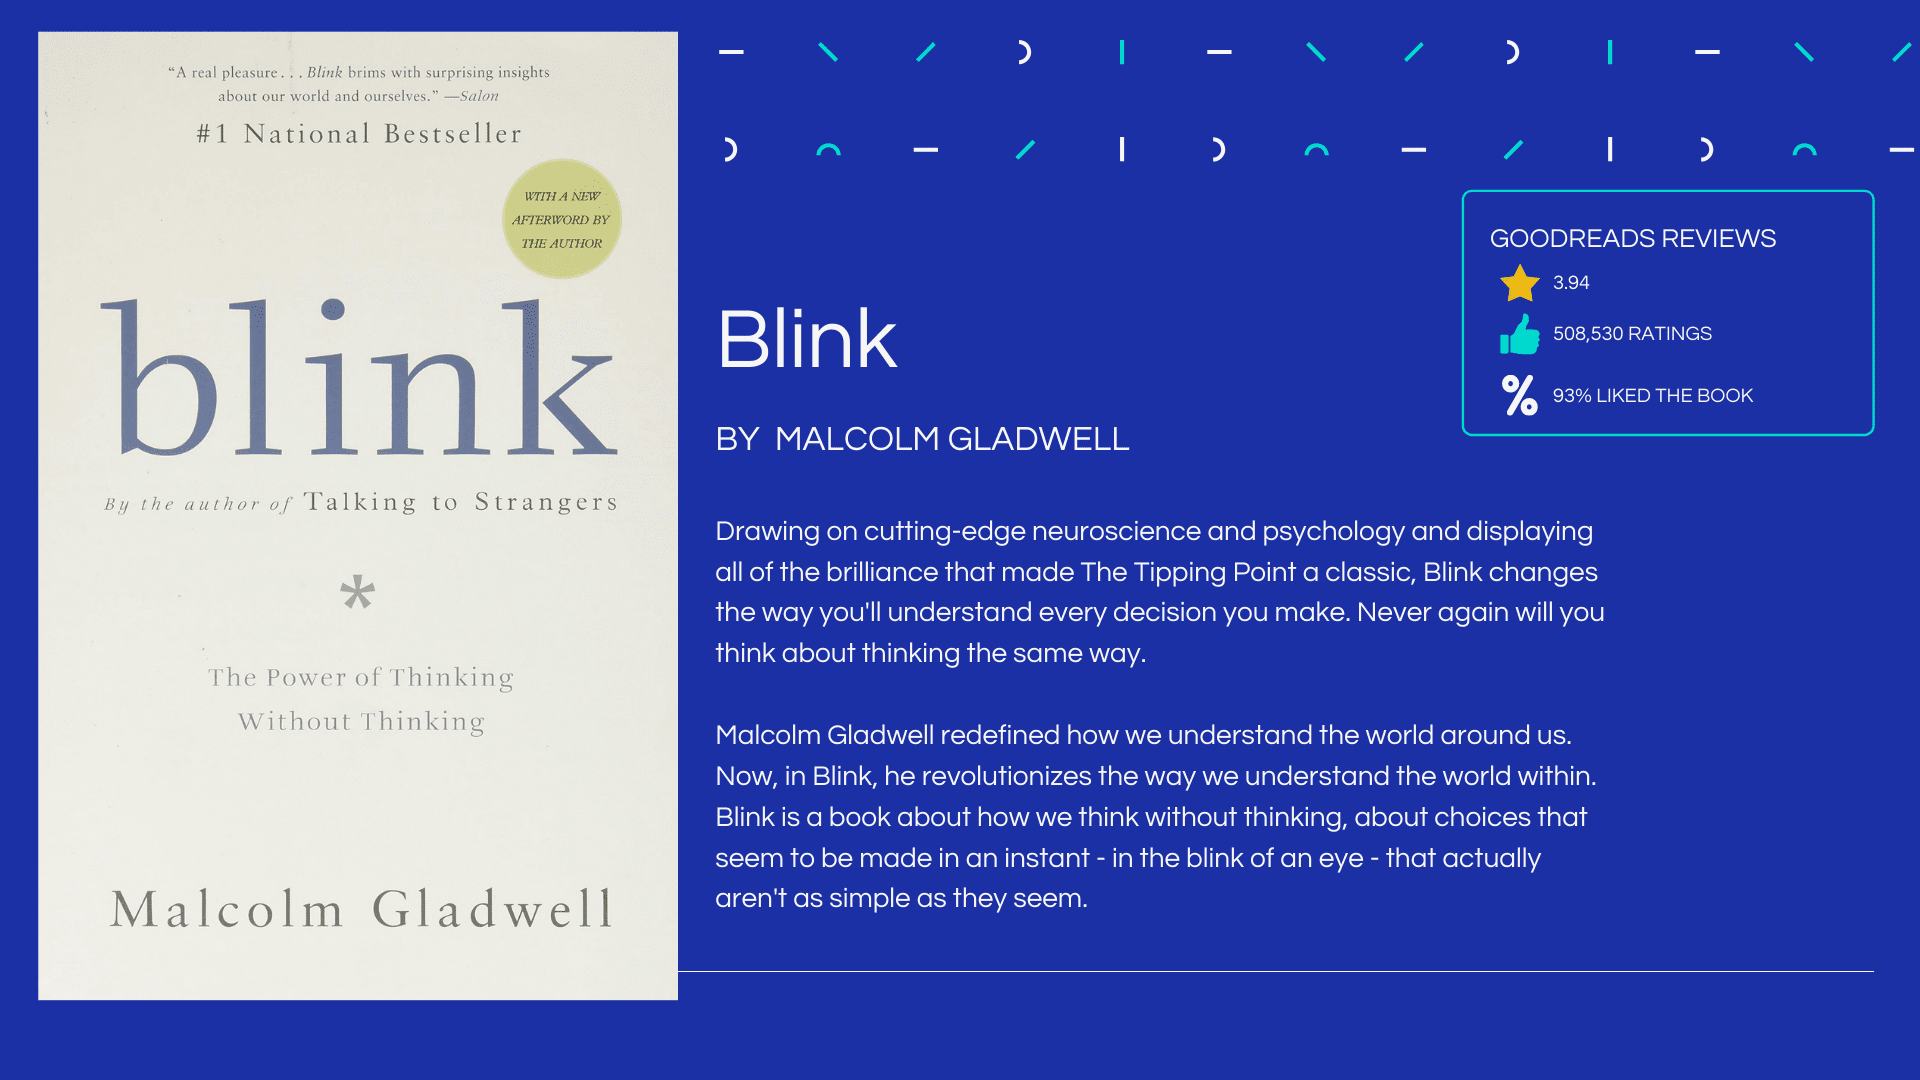 Blink by Malcolm Gladwell